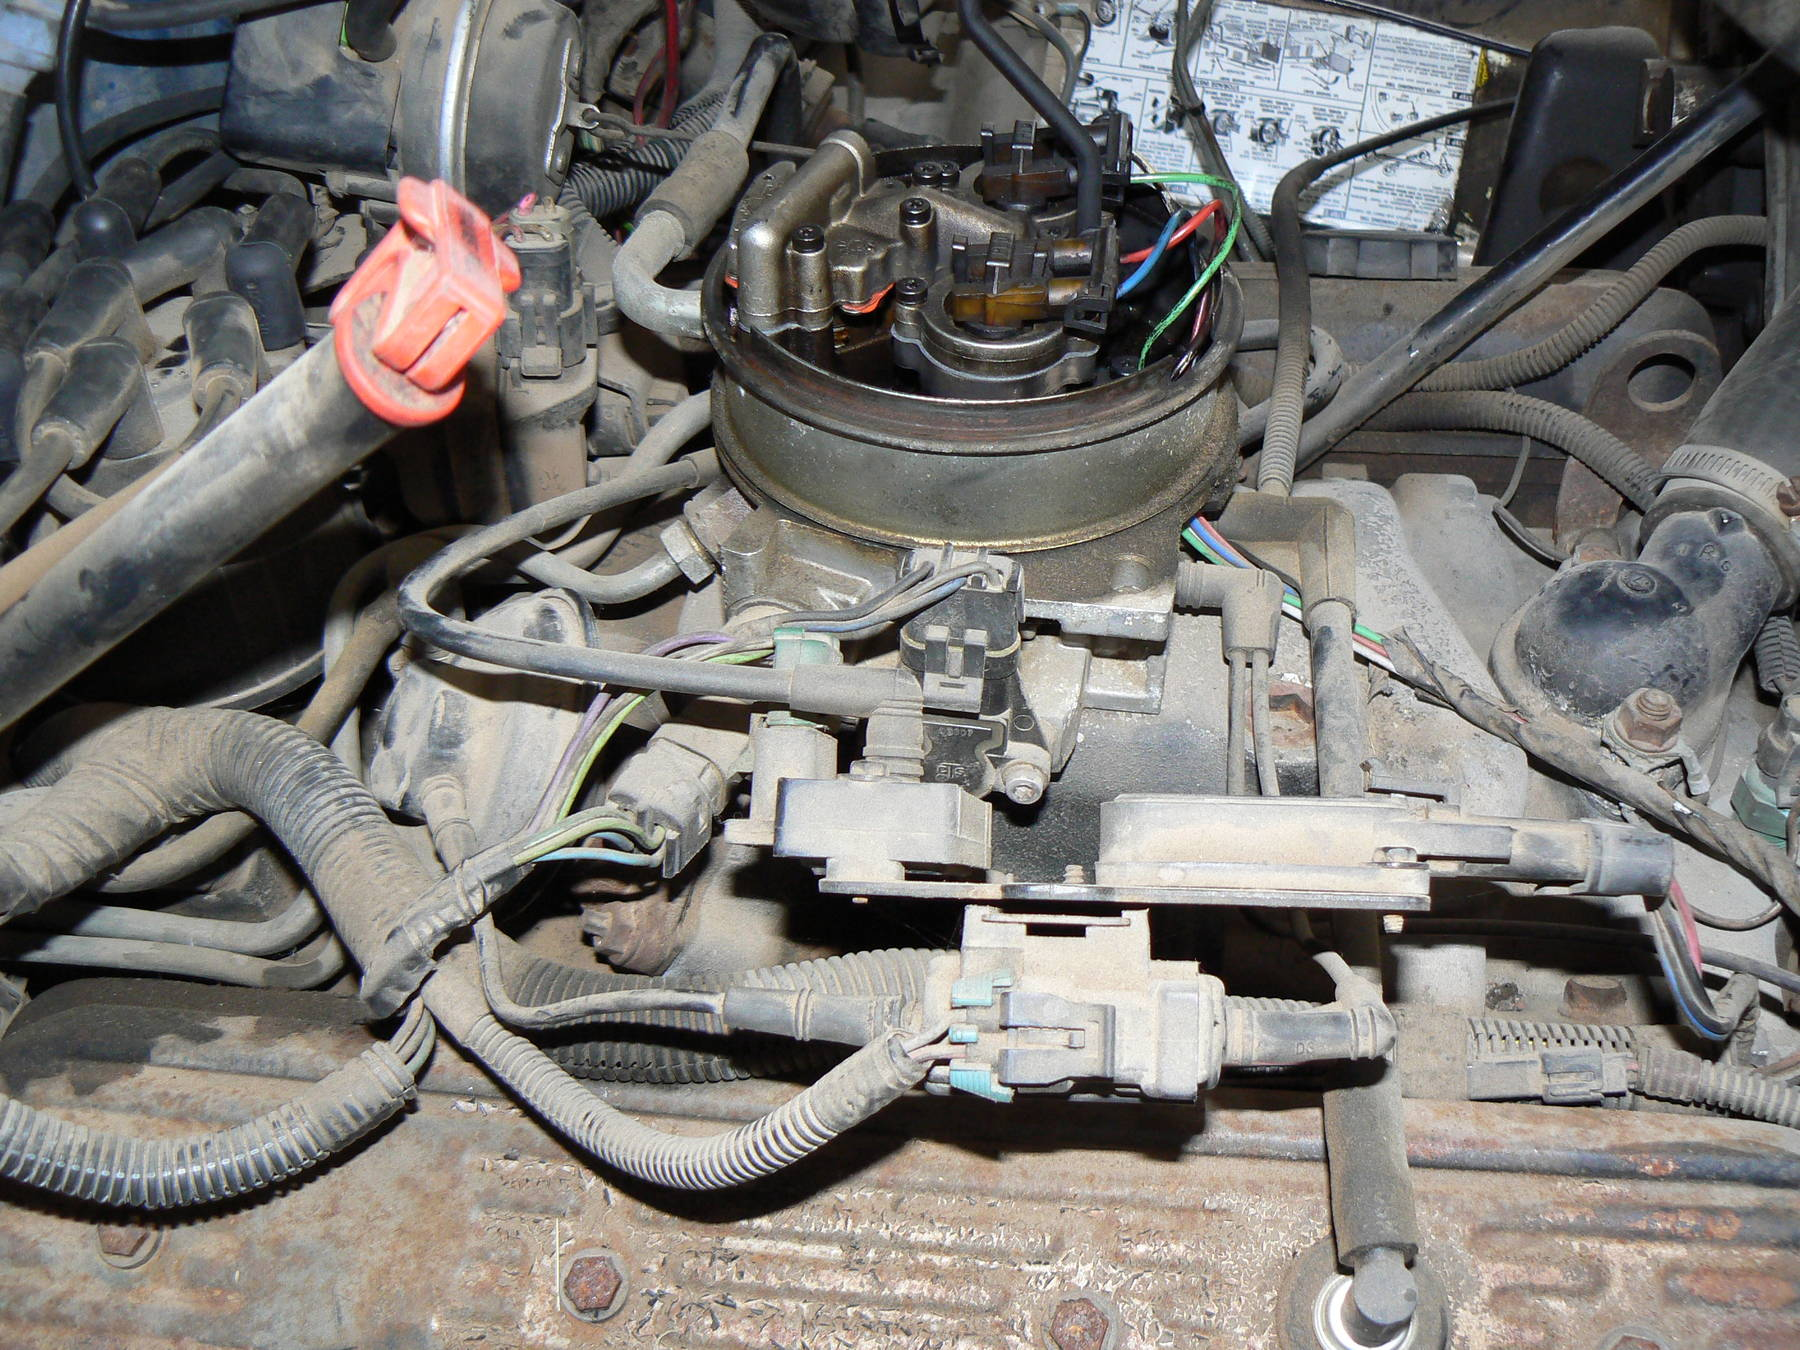 1988 350 TBI idles funny, stalls when put in gear, and